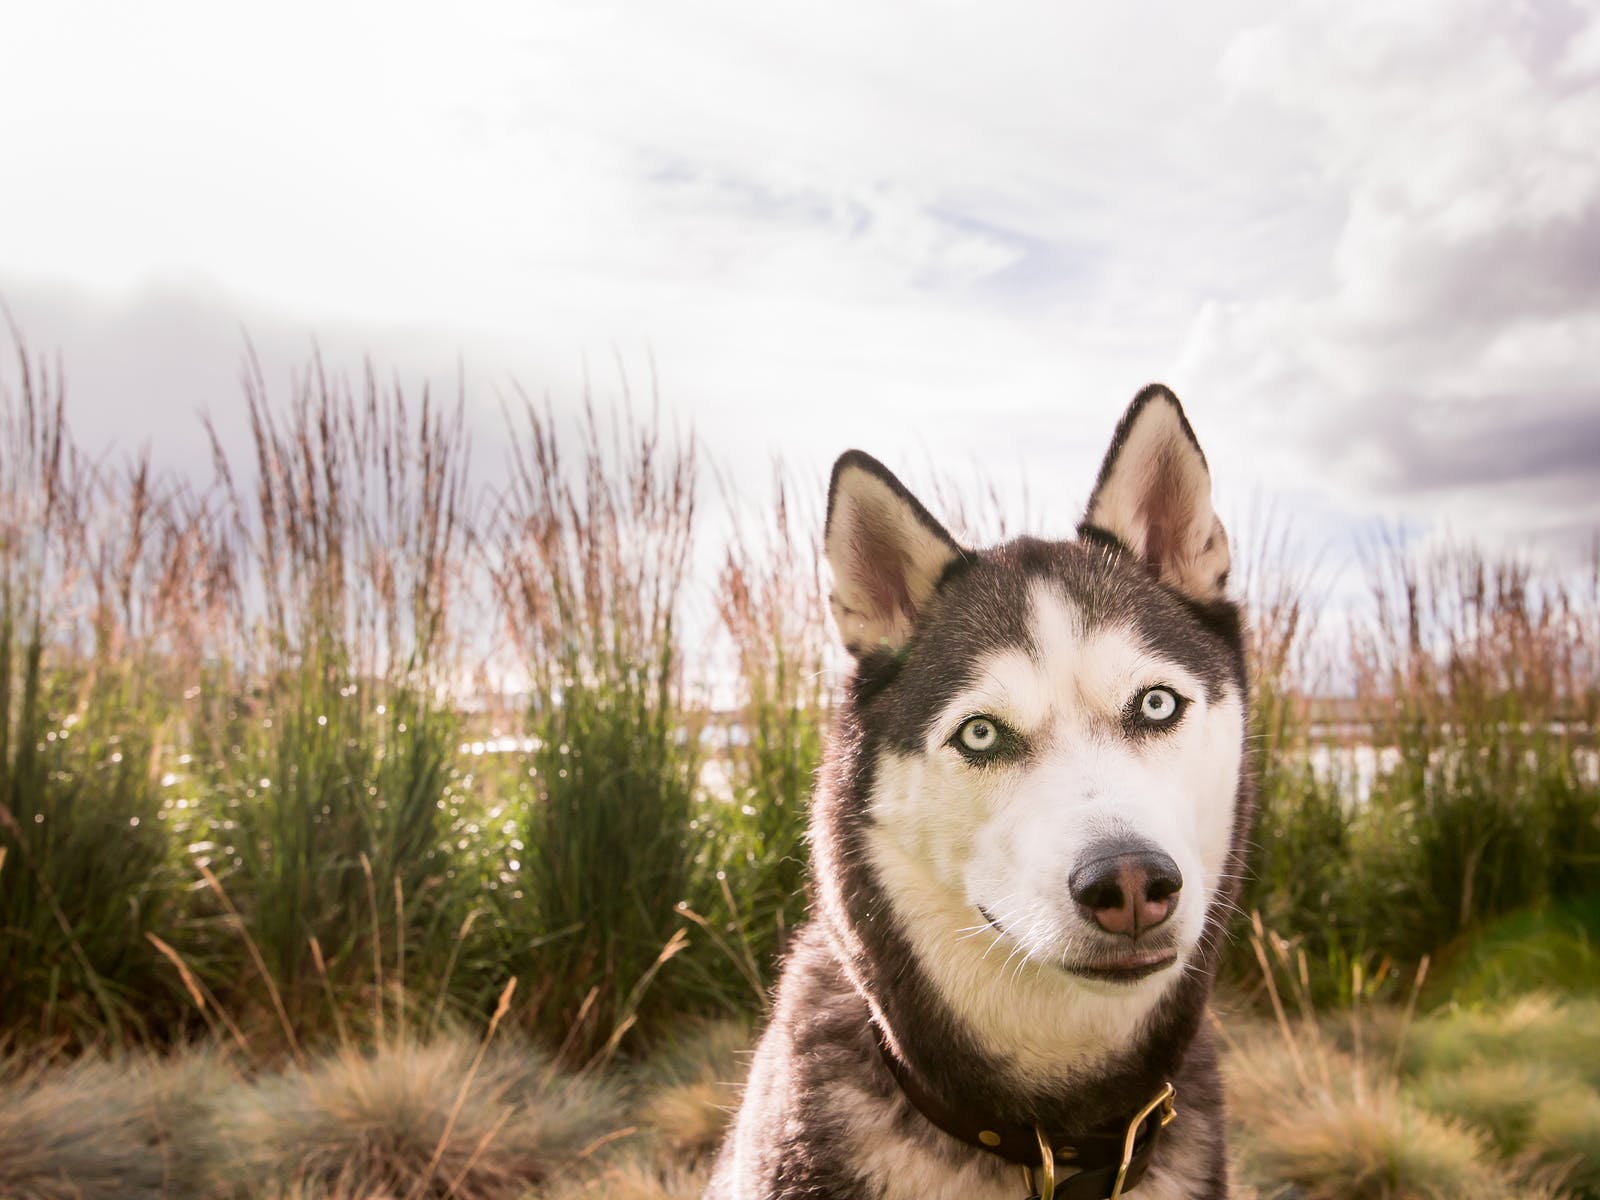 Siberian husky standing in front of beach grasses